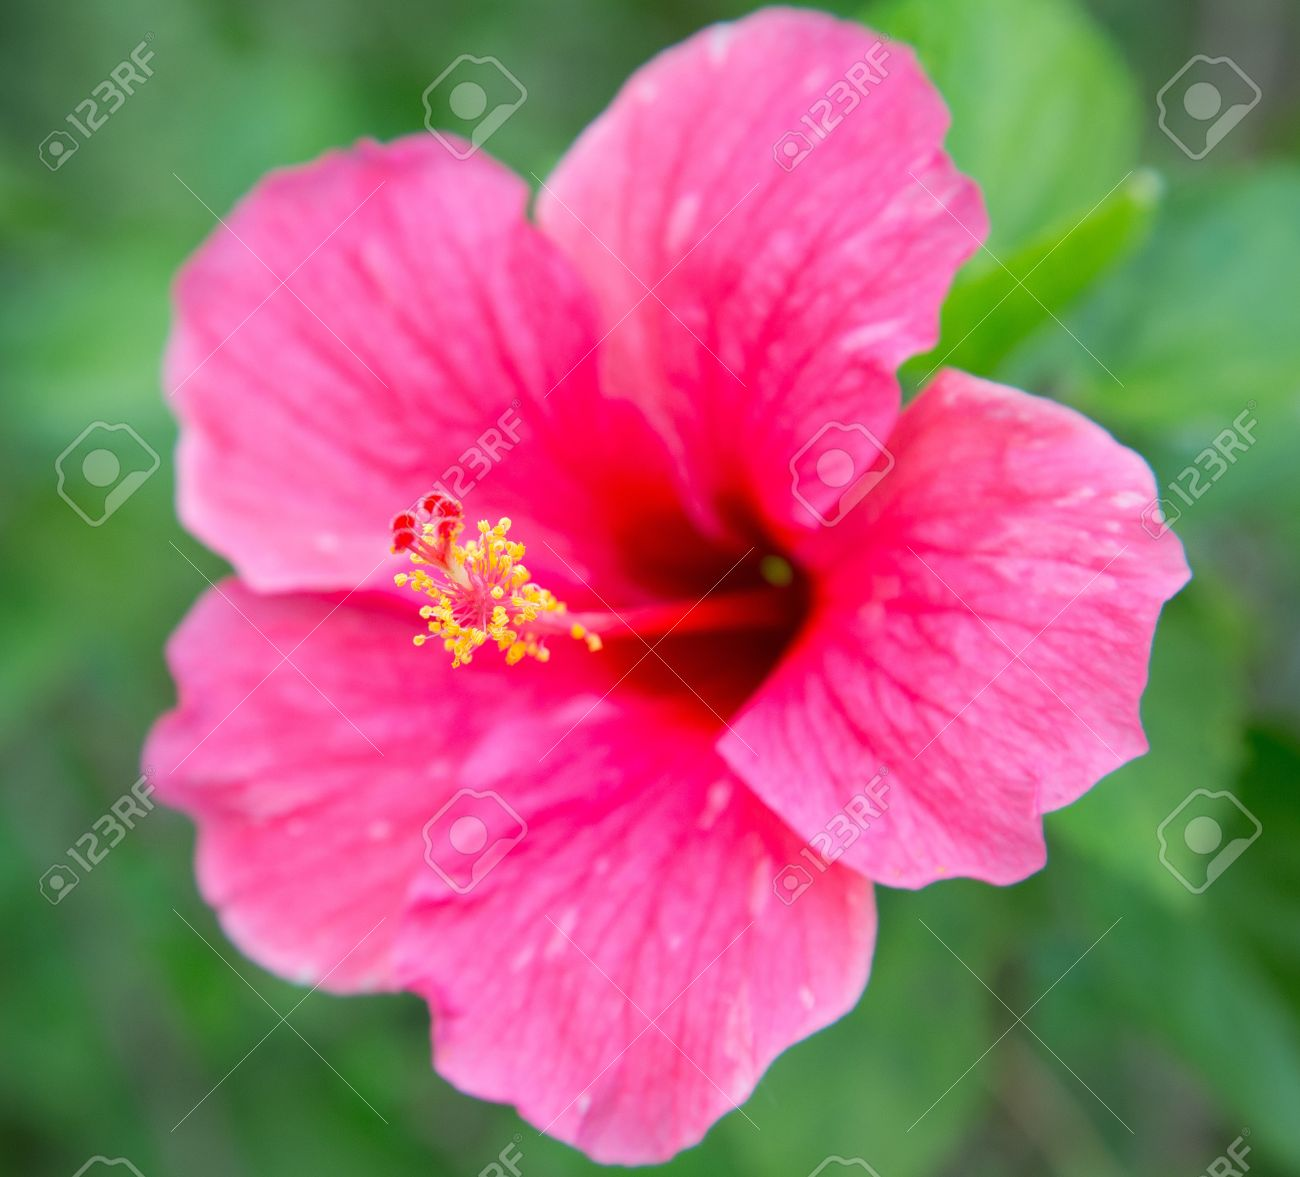 Big pink hibiscus flower with leaves on green background stock photo big pink hibiscus flower with leaves on green background stock photo 18409228 izmirmasajfo Gallery